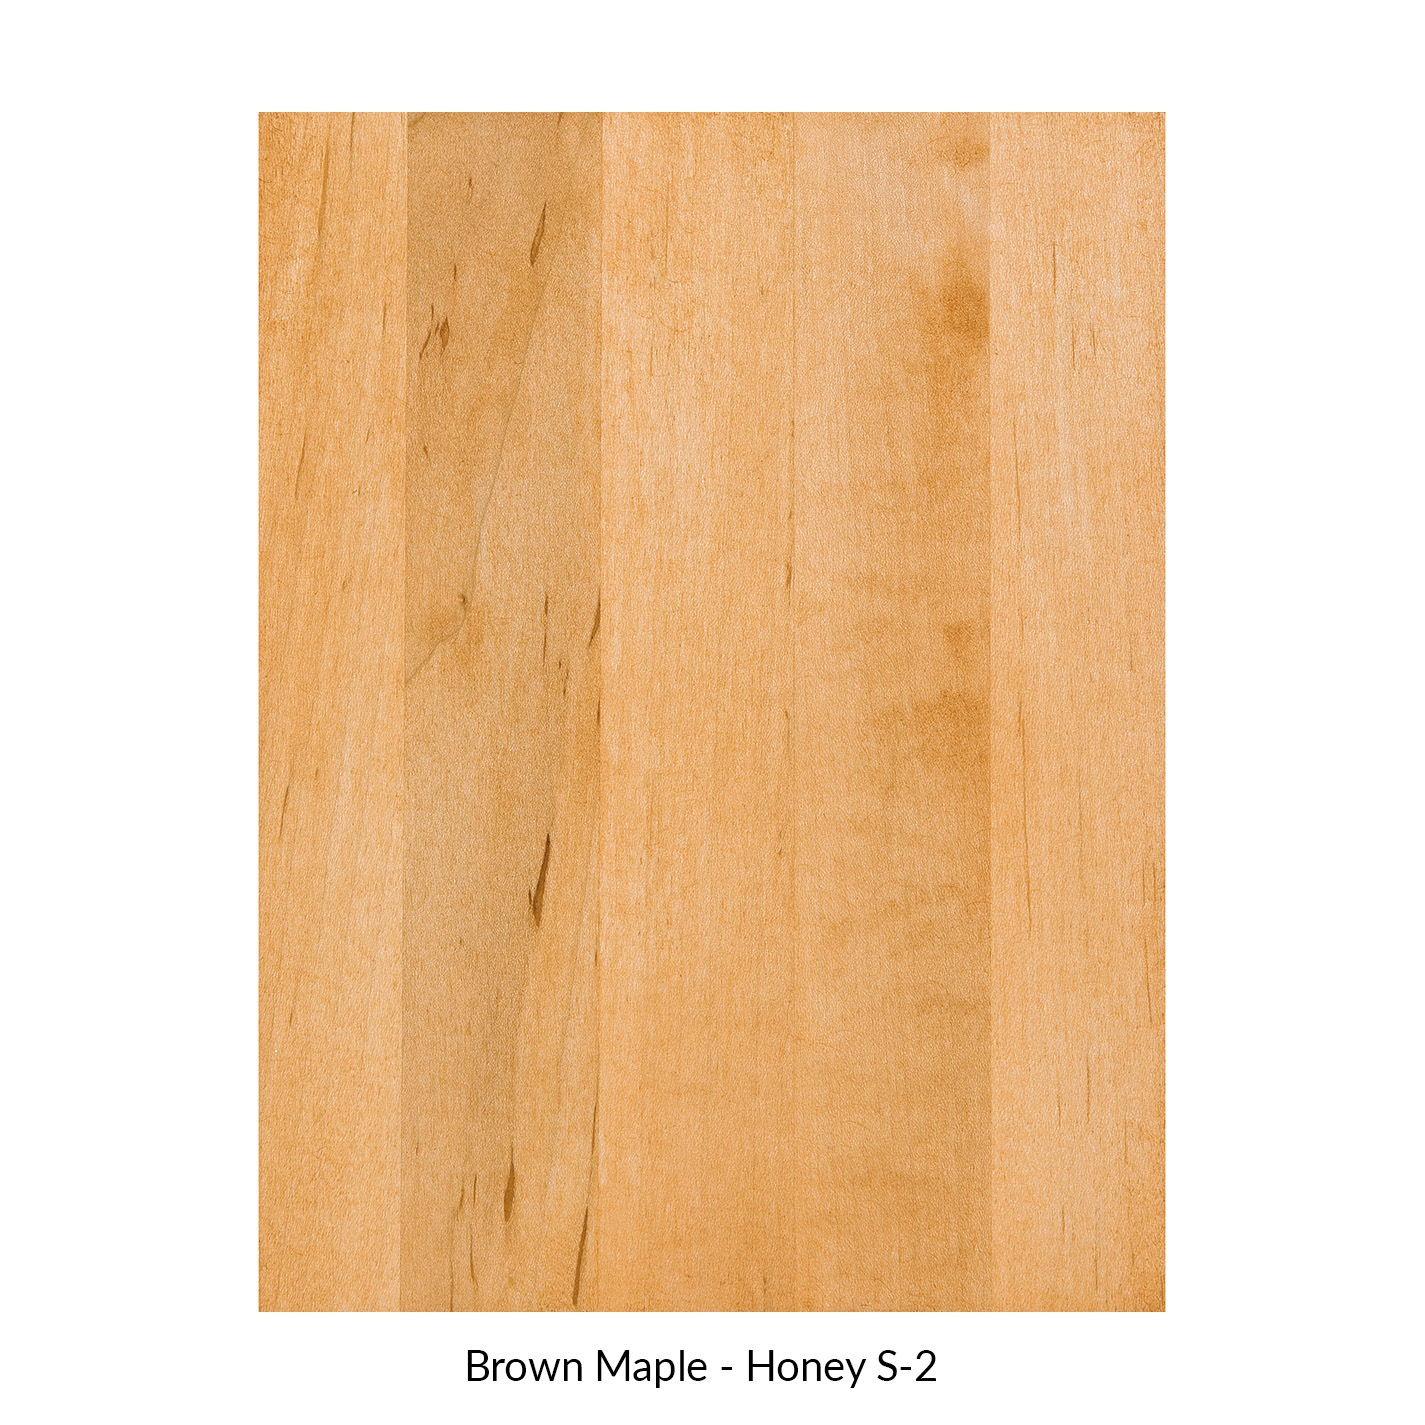 spectrum-brown-maple-honey-s-2.jpg